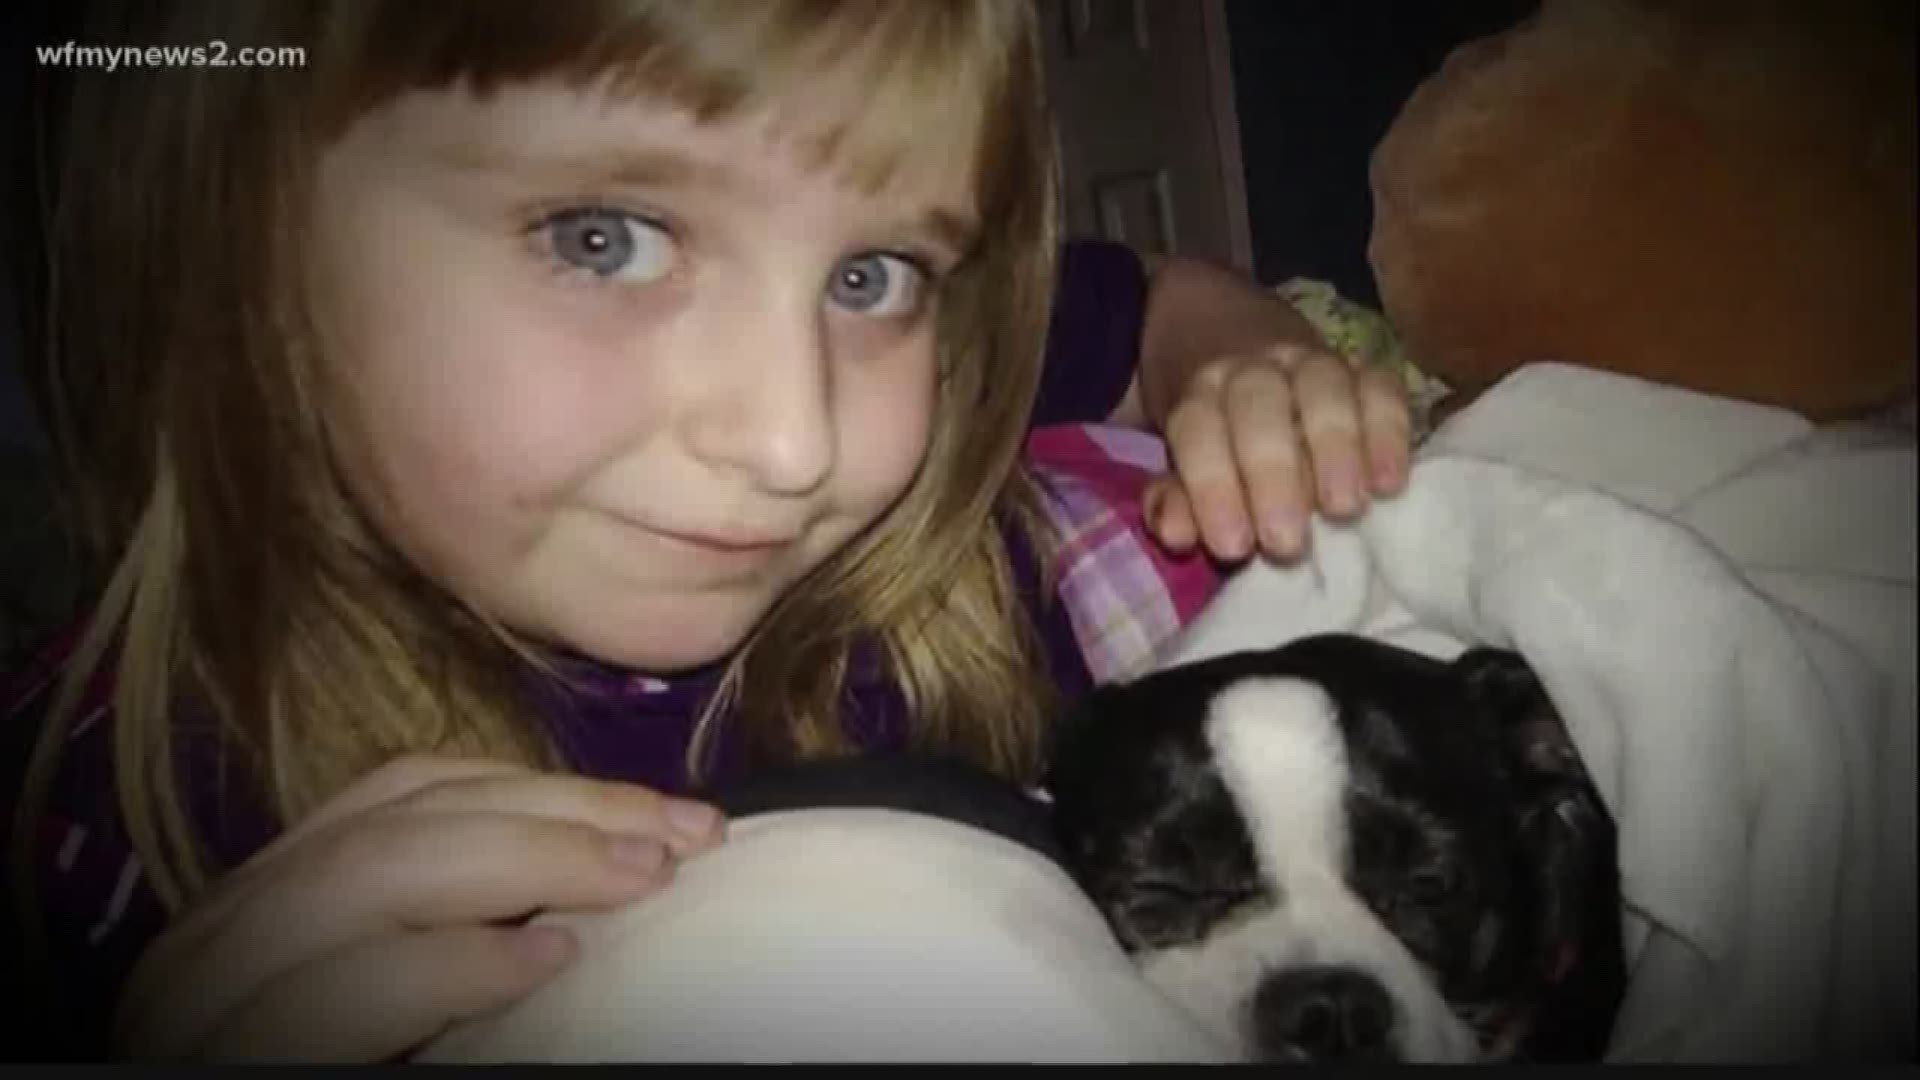 Concerns About The Criteria For Issuing An Amber Alert In A Missing Child Case Wfmynews2 Com